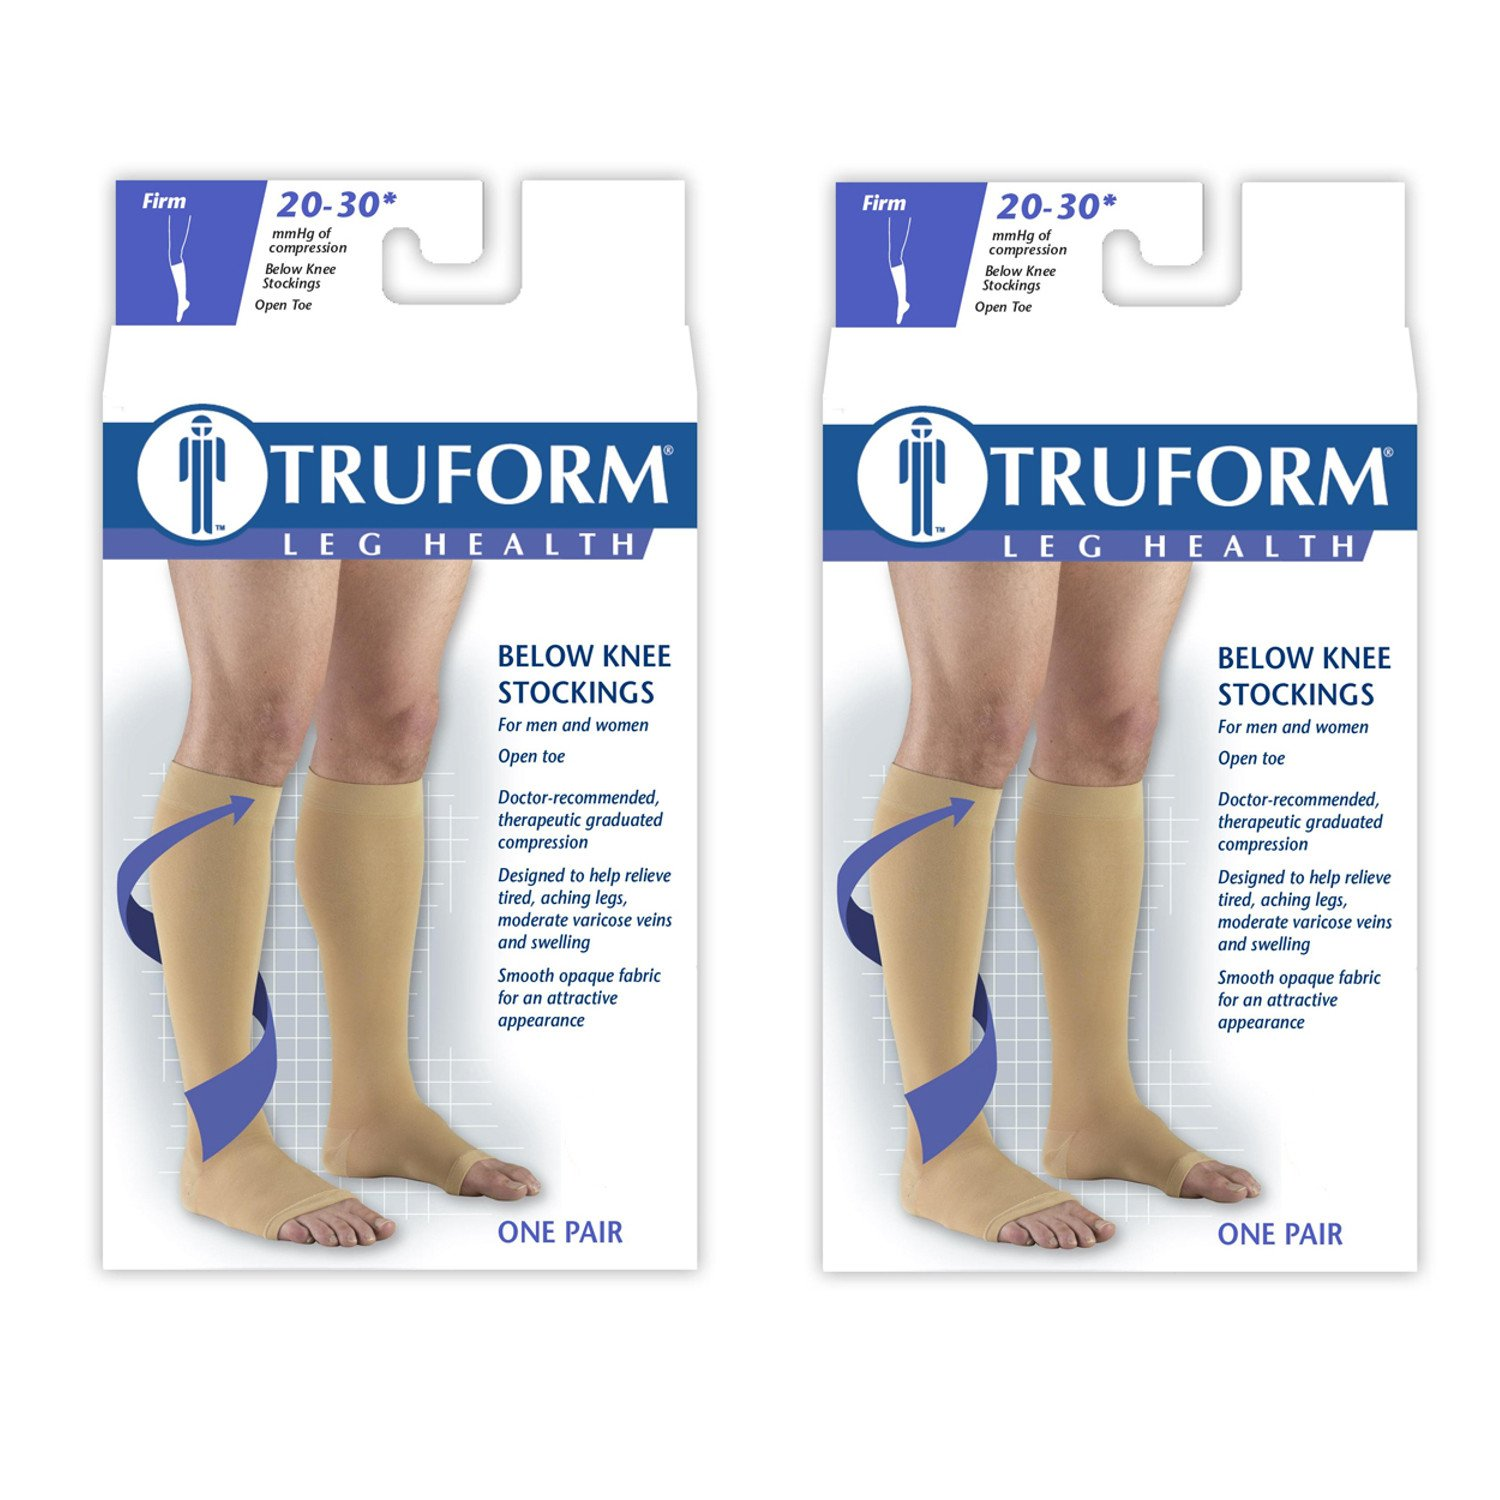 Truform Compression 20-30 mmHg Knee High Open Toe Stockings Beige, Large - Short, 2 Count